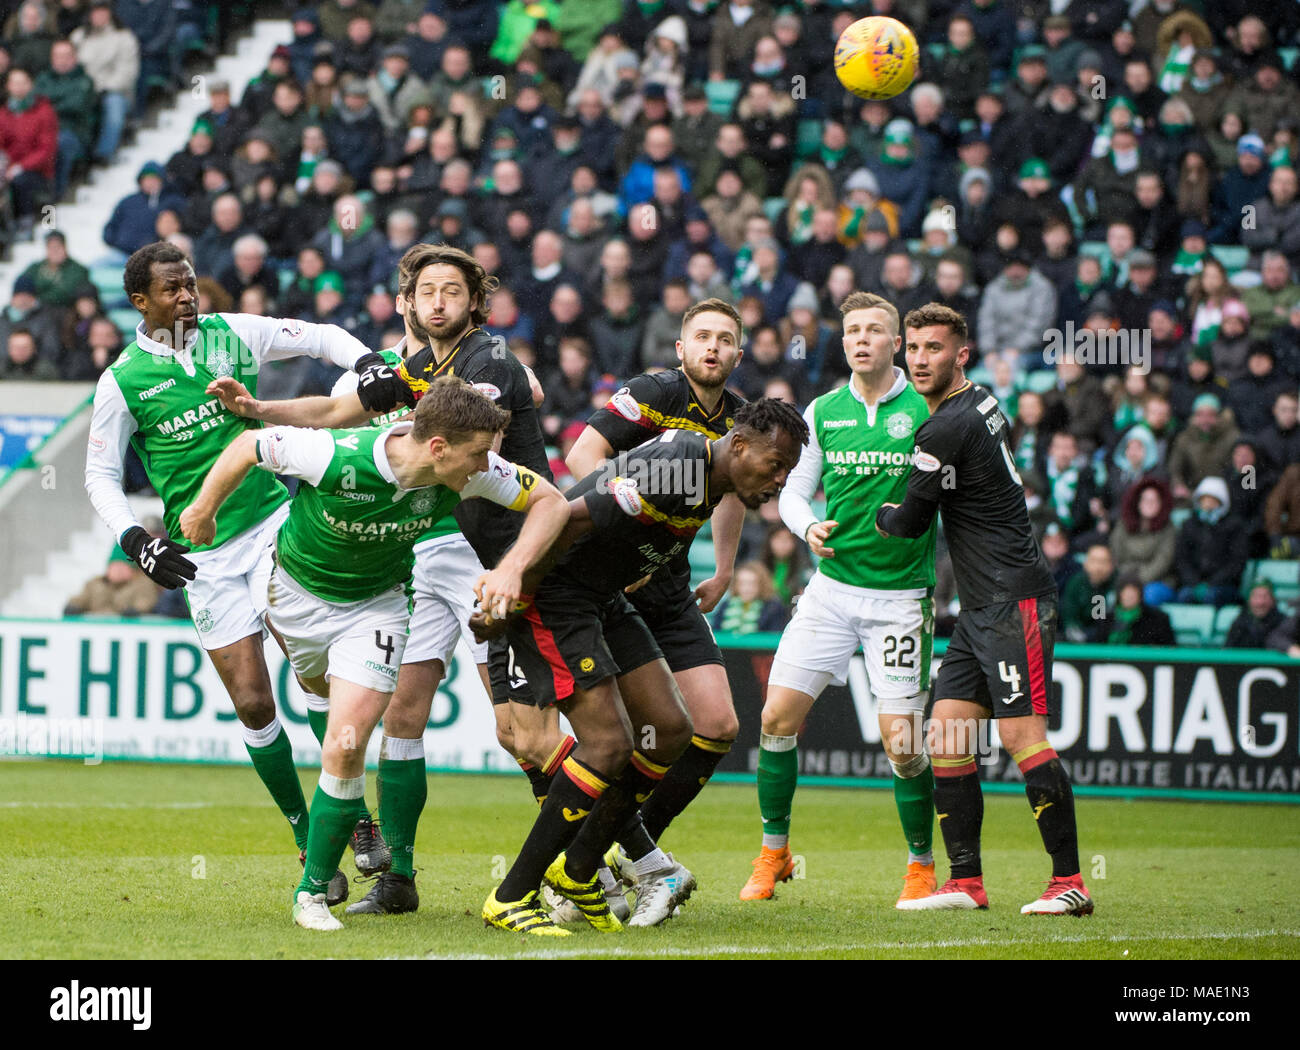 Scottish Premiereship, Hibernian v Partick Thistle, Edinburgh, Midlothian, UK. 31,03, 2018. Pic shows:  Hibs defender, Paul Hanlon, heads home to score his side's second goal during the second half of the Scottish Premiereship clash between Hibernian and Partick Thistle at Easter Road Stadium, Edinburgh.  Credit: Alamy/Ian Jacobs - Stock Image